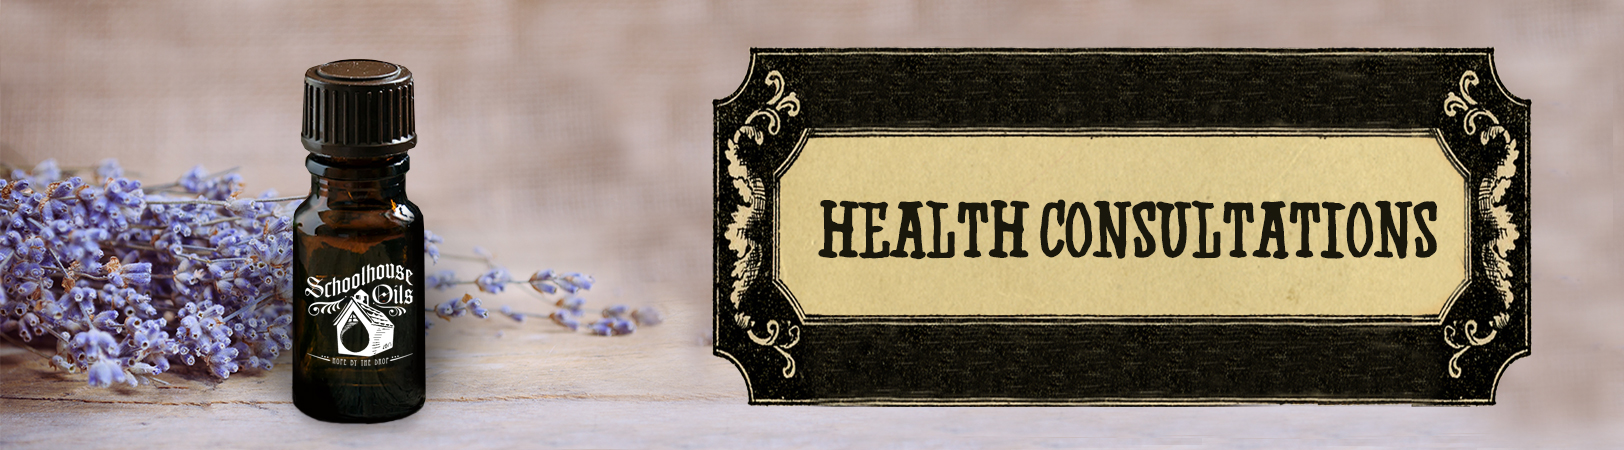 Essential Oils health consultations